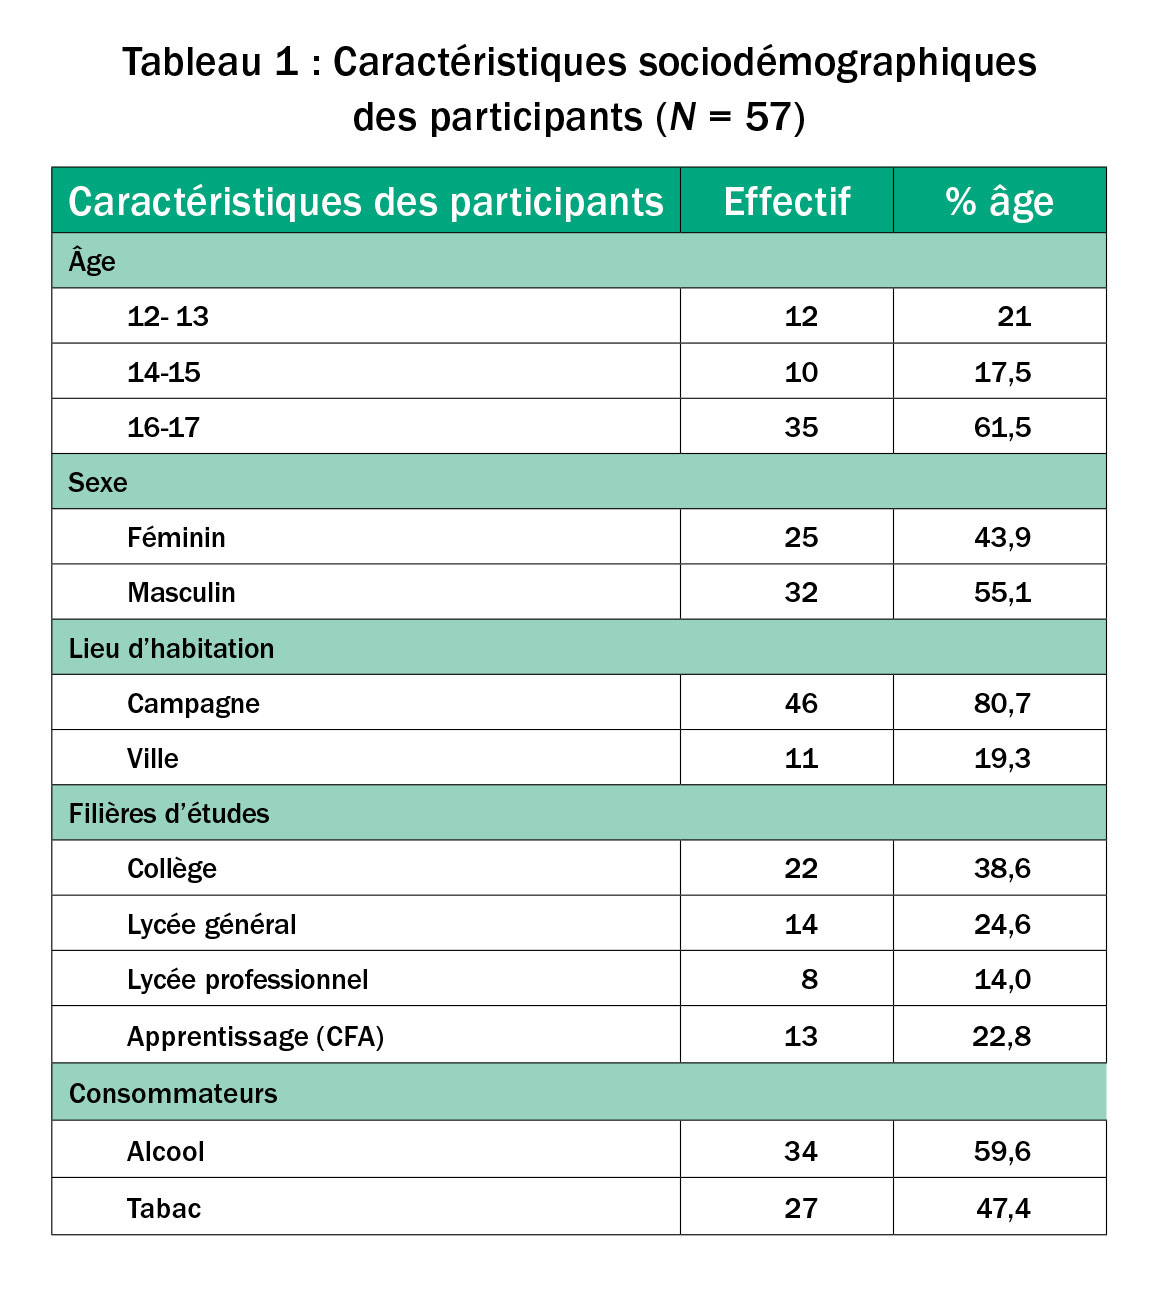 l u2019enjeu de la subjectivit u00e9 des adolescents face aux mesures de pr u00e9vention de l u2019alcool et du